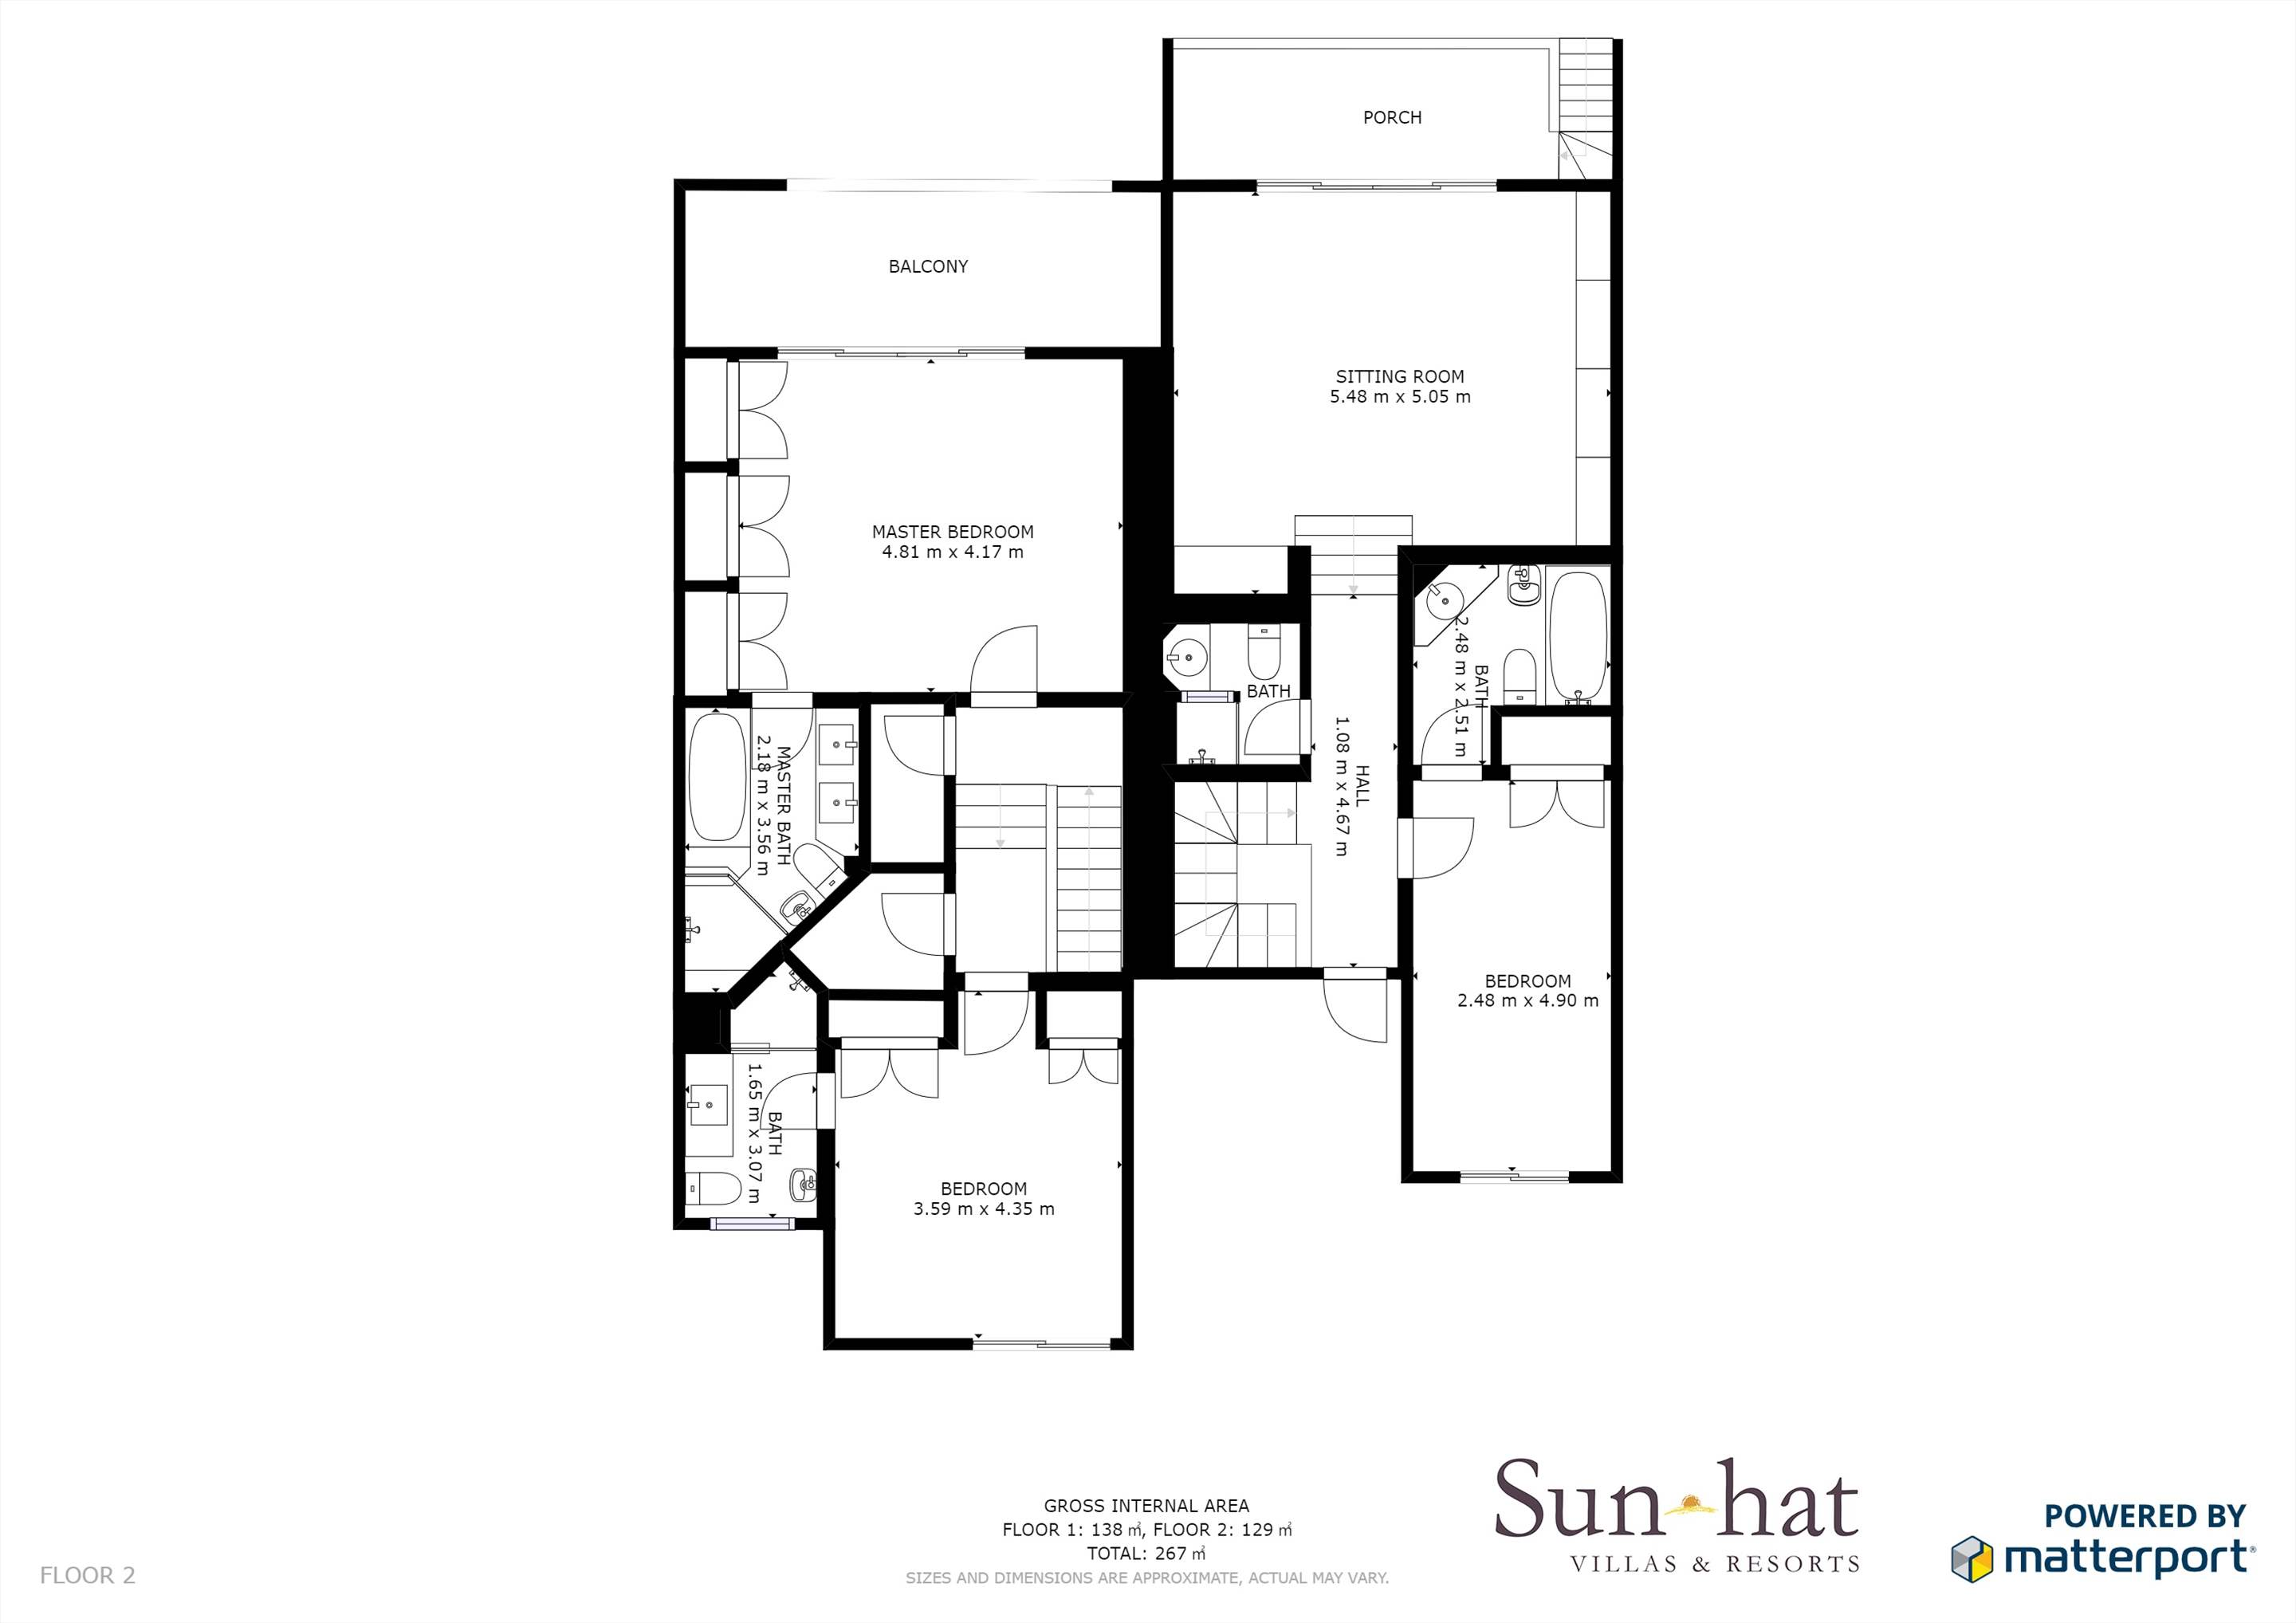 Villas Louisa, 5 bedroom Floorplan #2